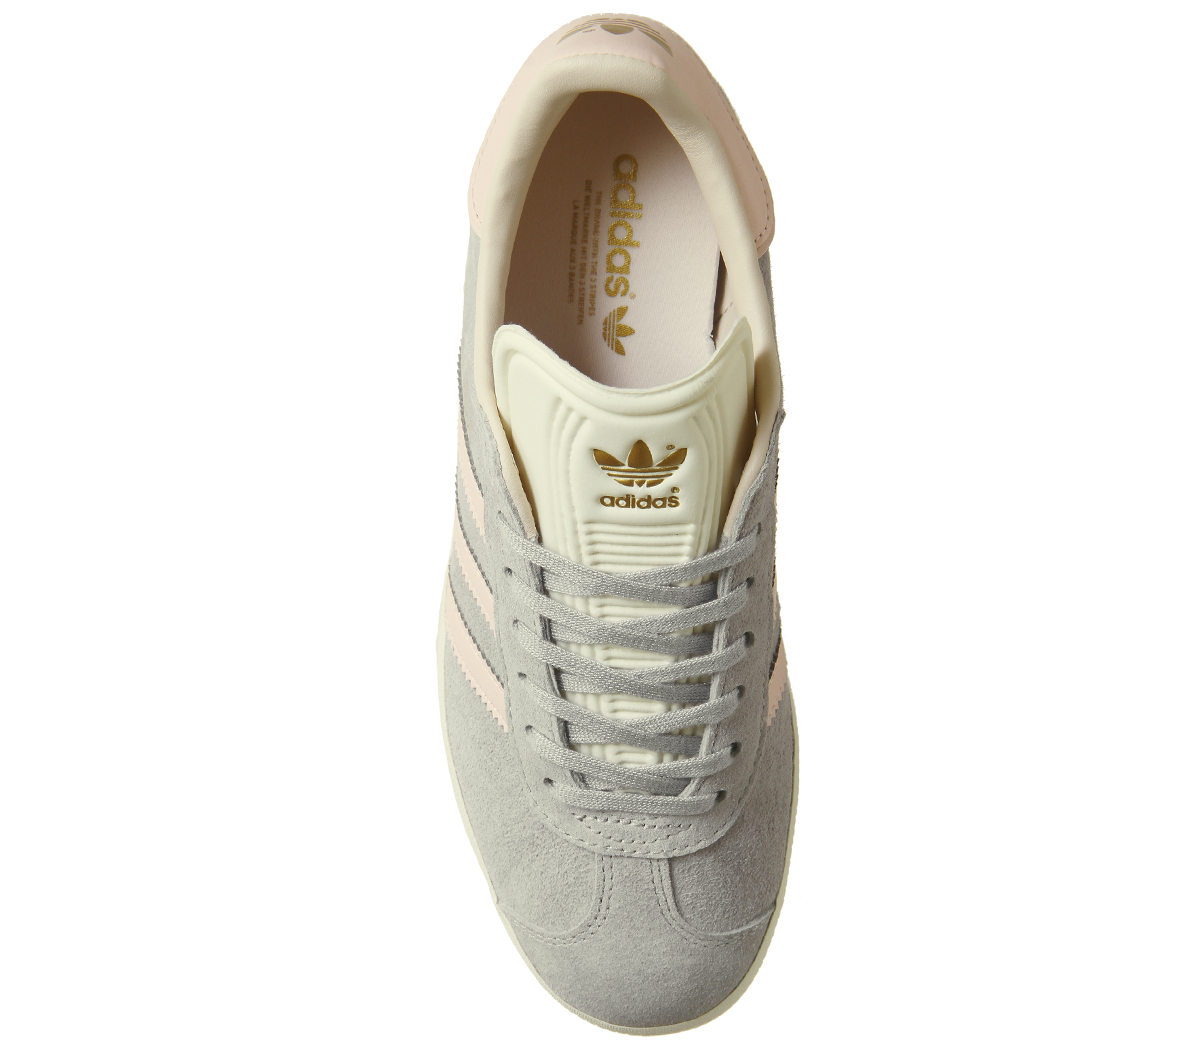 e91272866c26 Womens Adidas Gazelle Trainers Grey Two Icey Pink Cream White ...